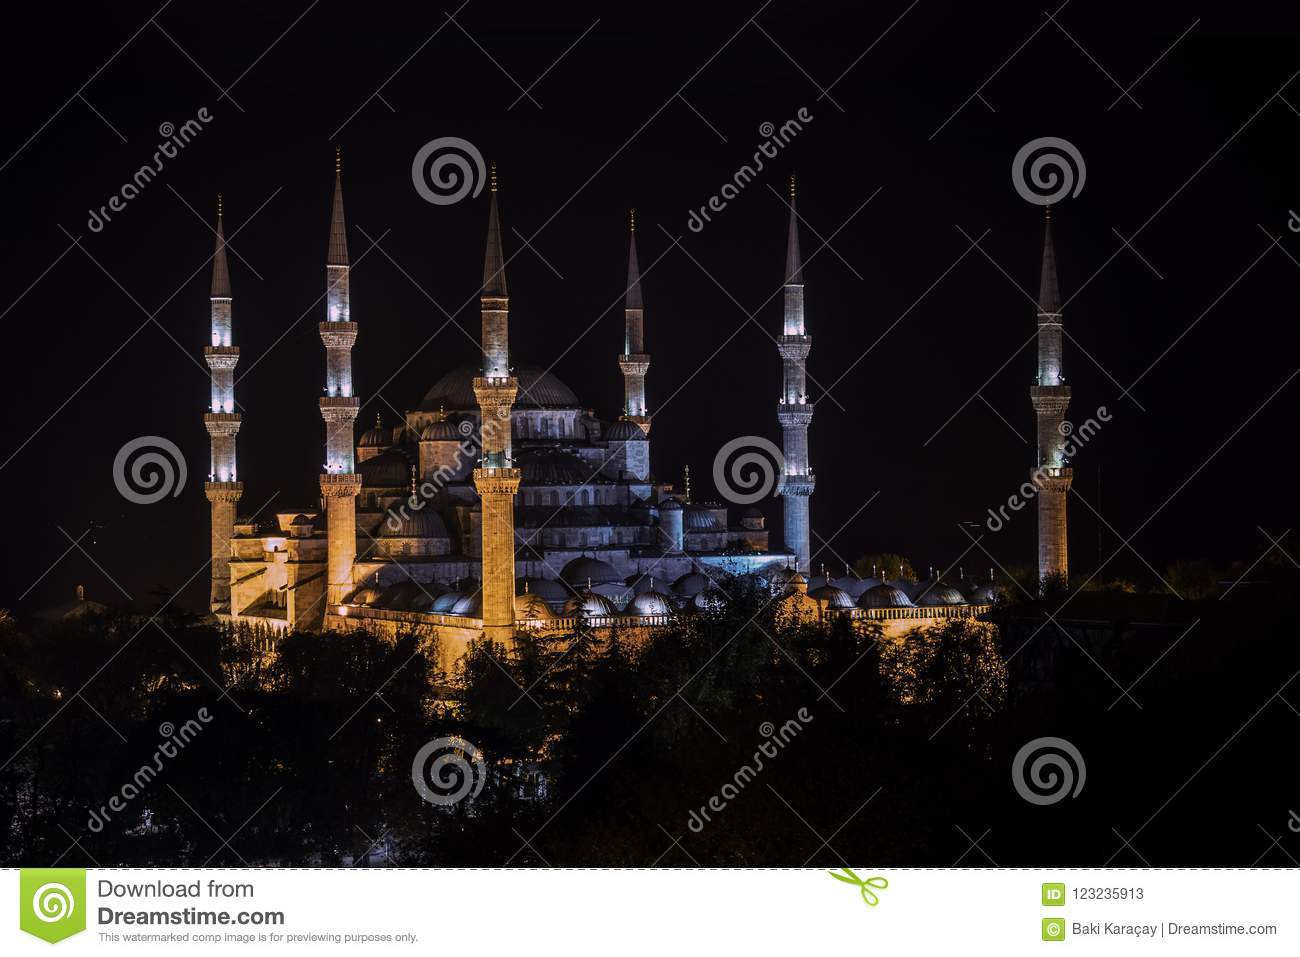 Night view of Blue Mosque of Ottoman architecture in Istanbul, Turkey